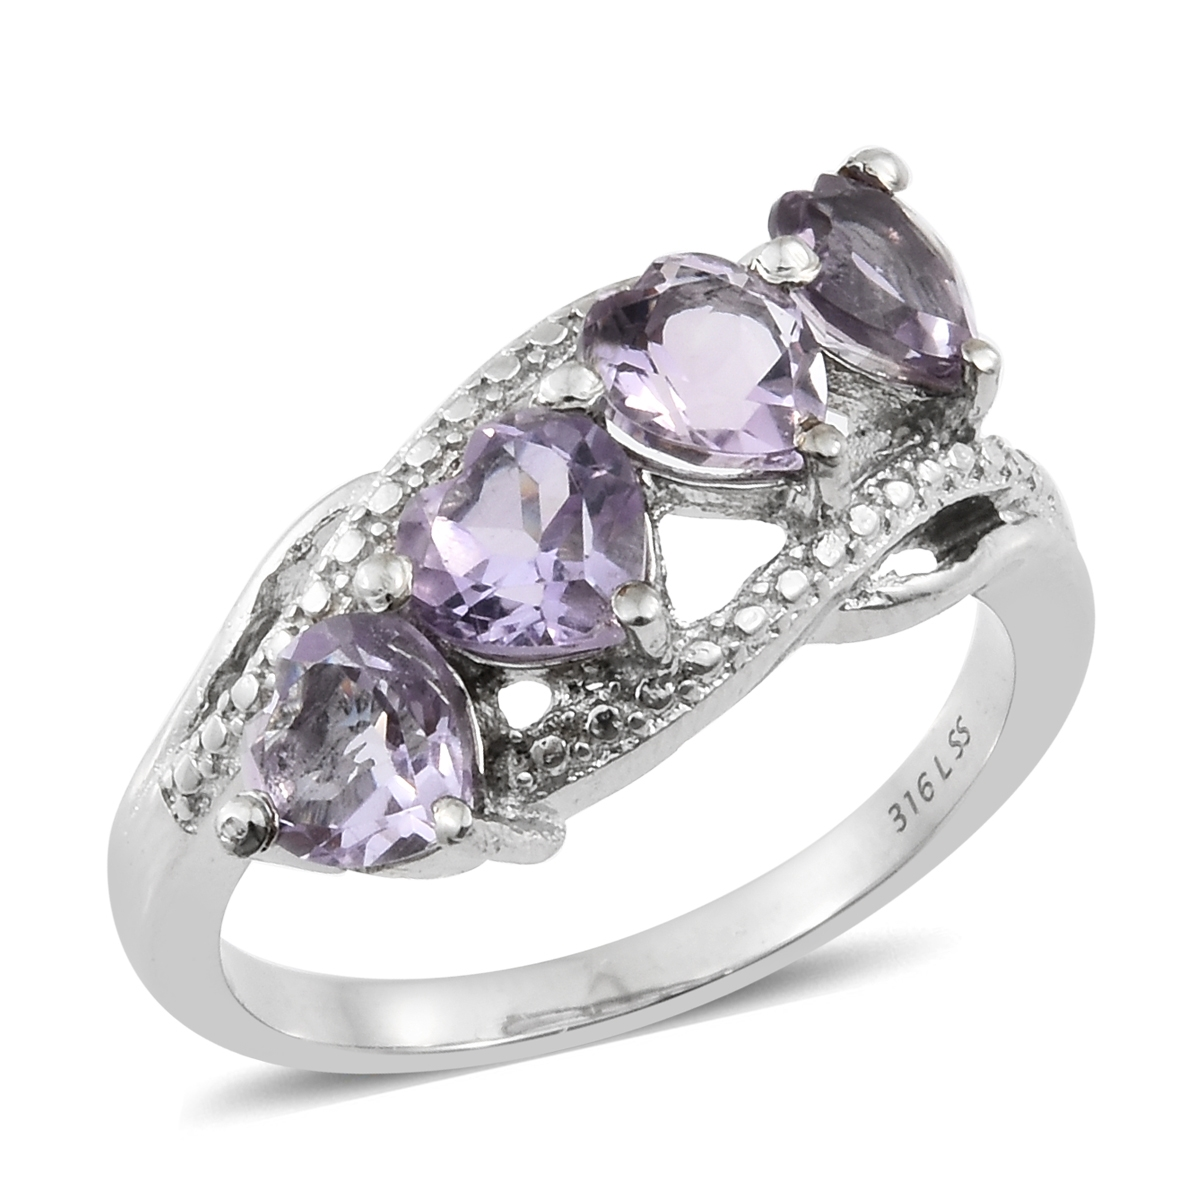 Rose De France Amethyst Stainless Steel 4 Heart Ring TGW 2.80 cts. - Houzz of DVA Boutique